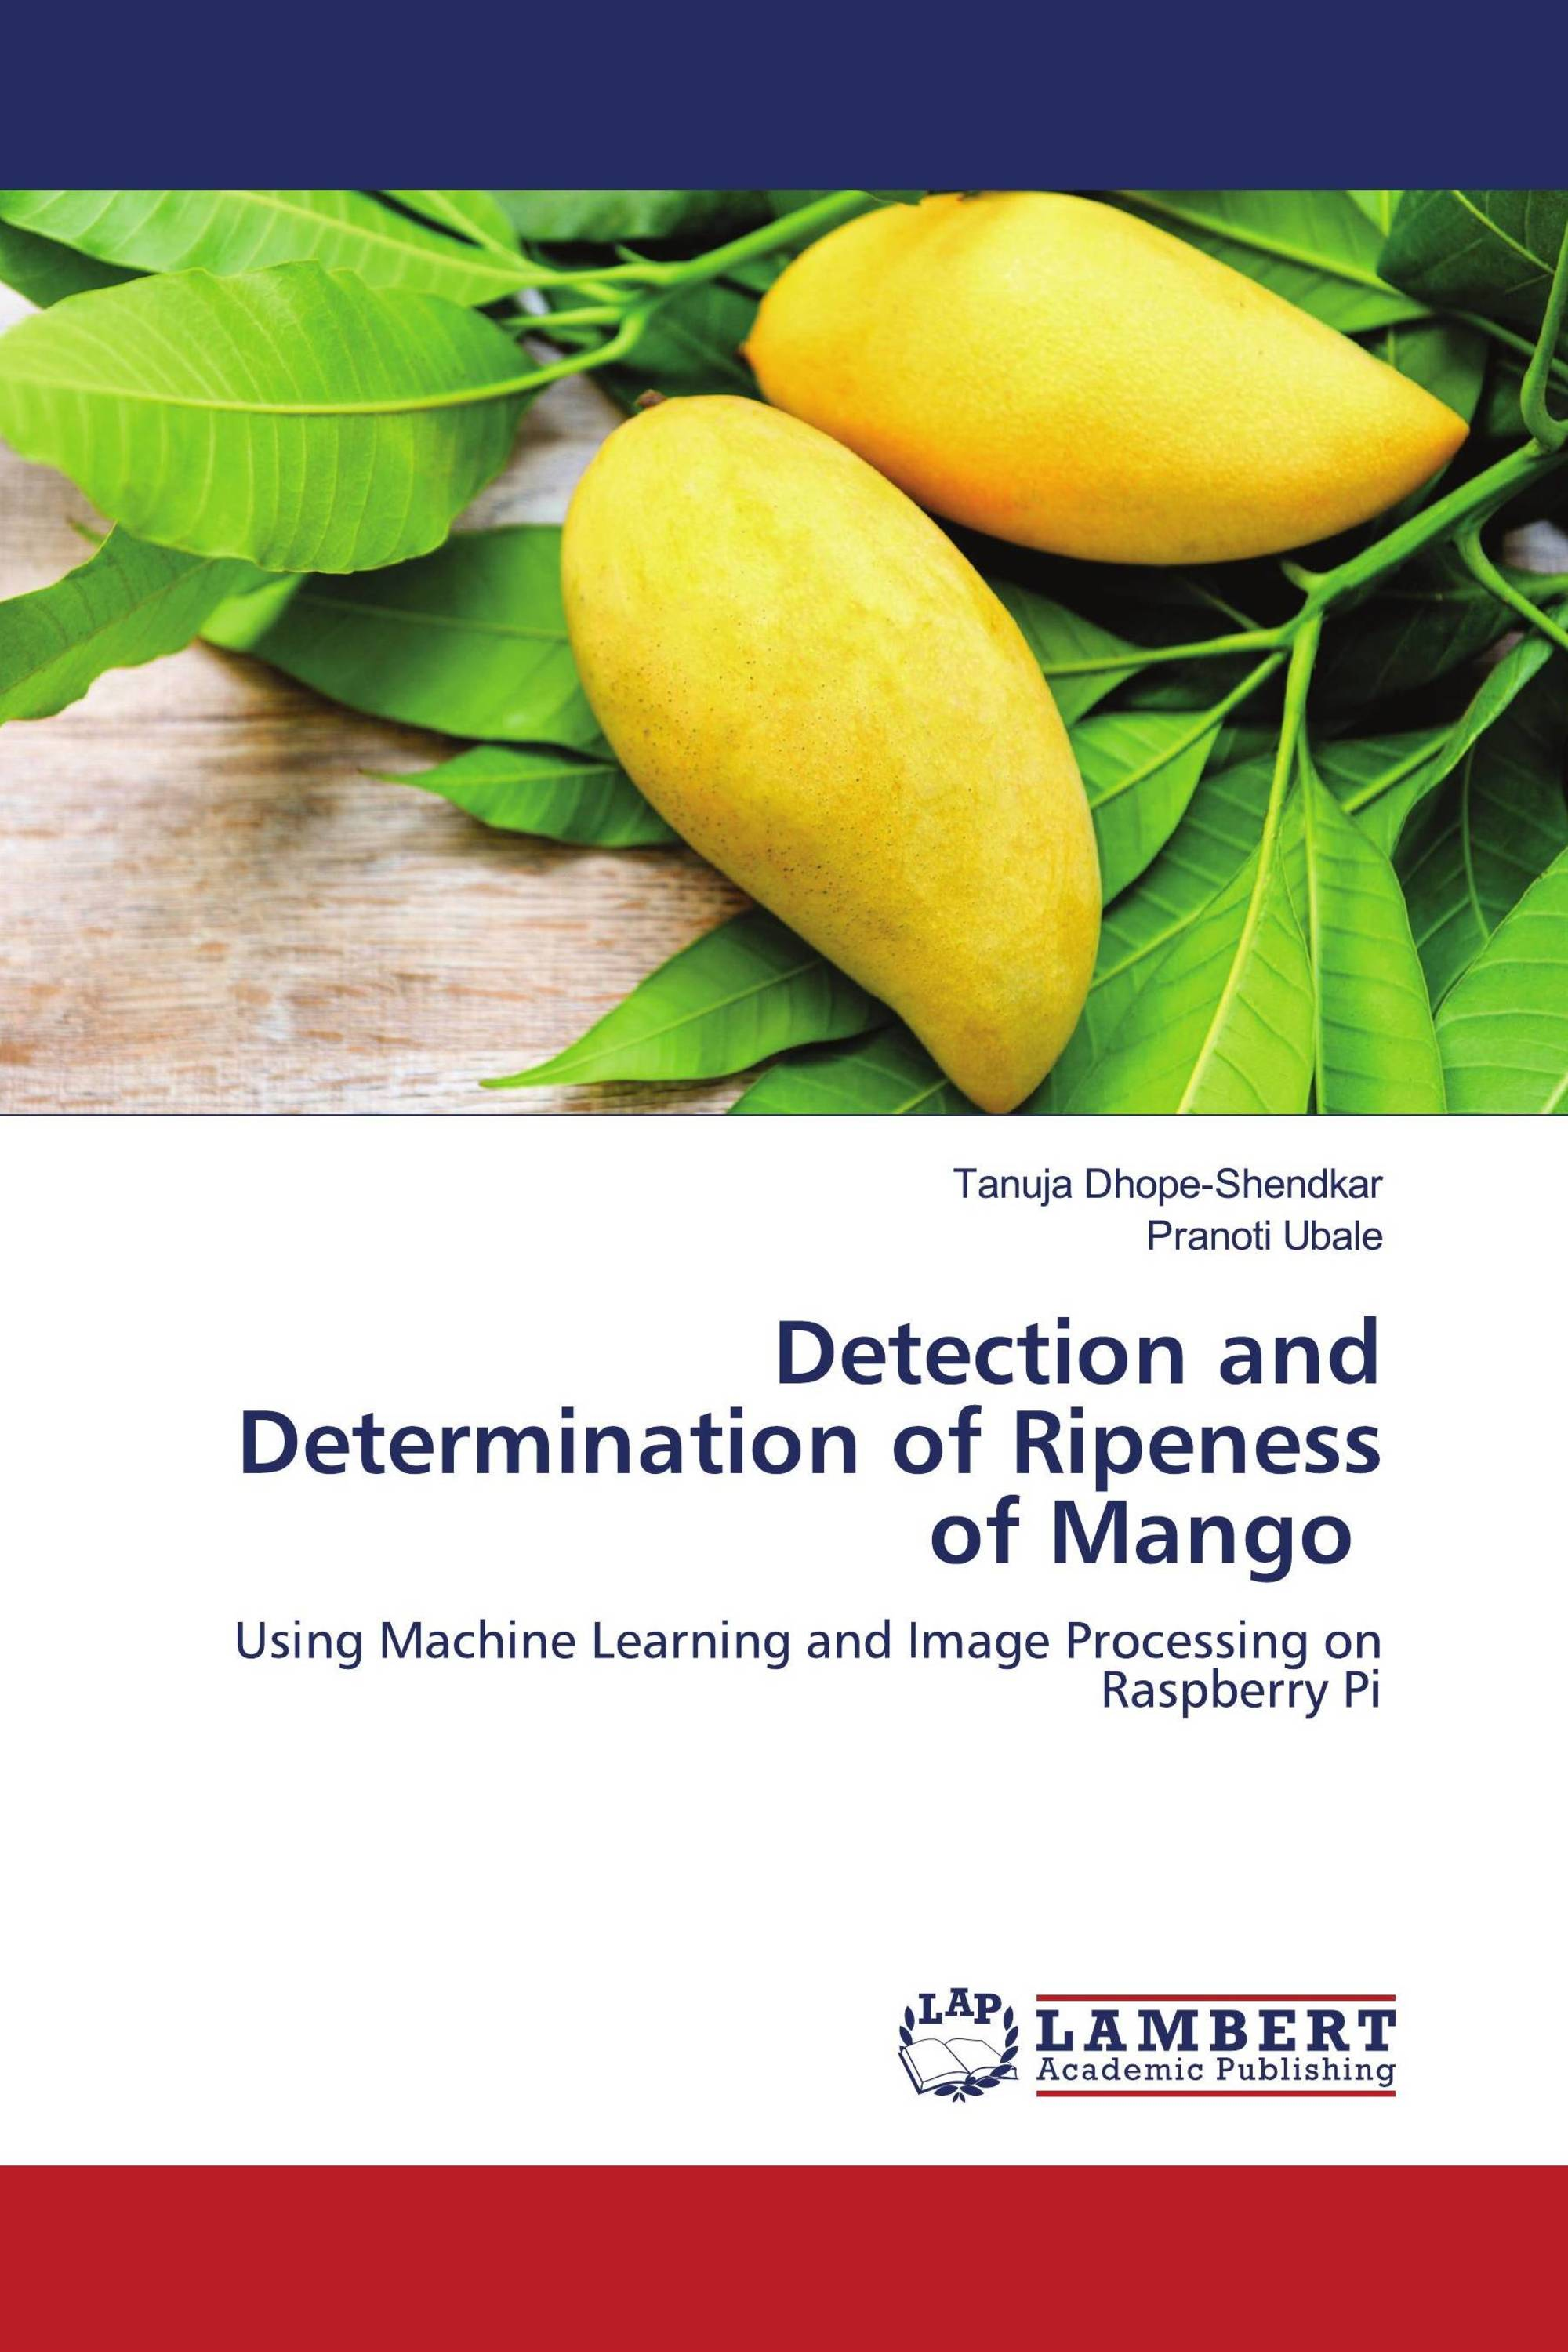 Detection and Determination of Ripeness of Mango